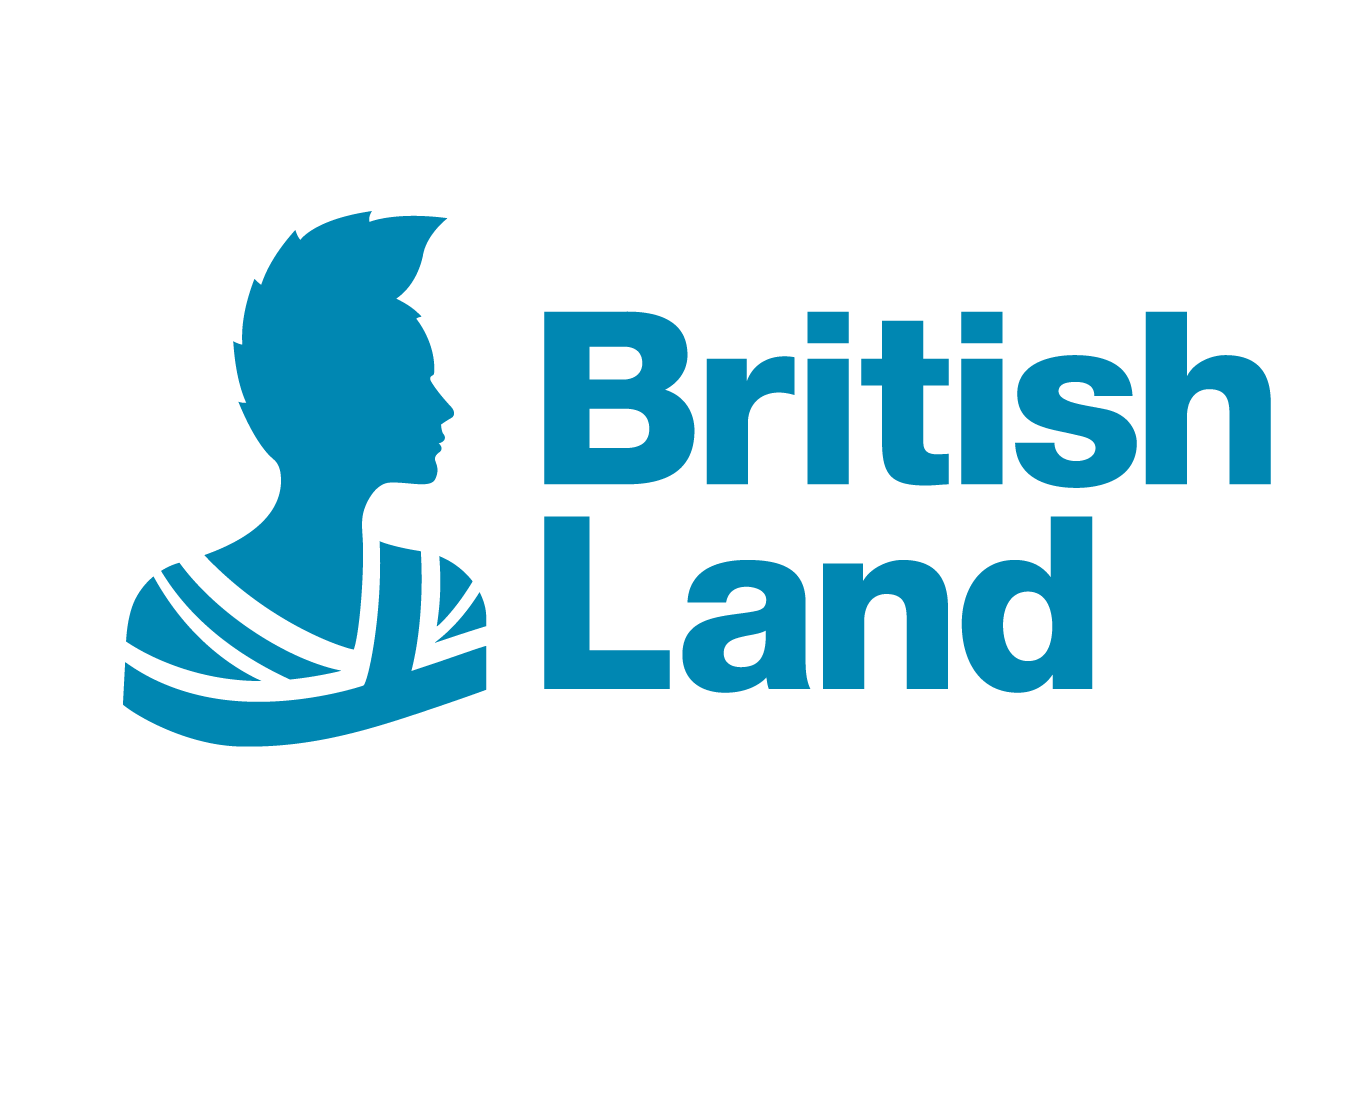 British-Land-Logo-01.png